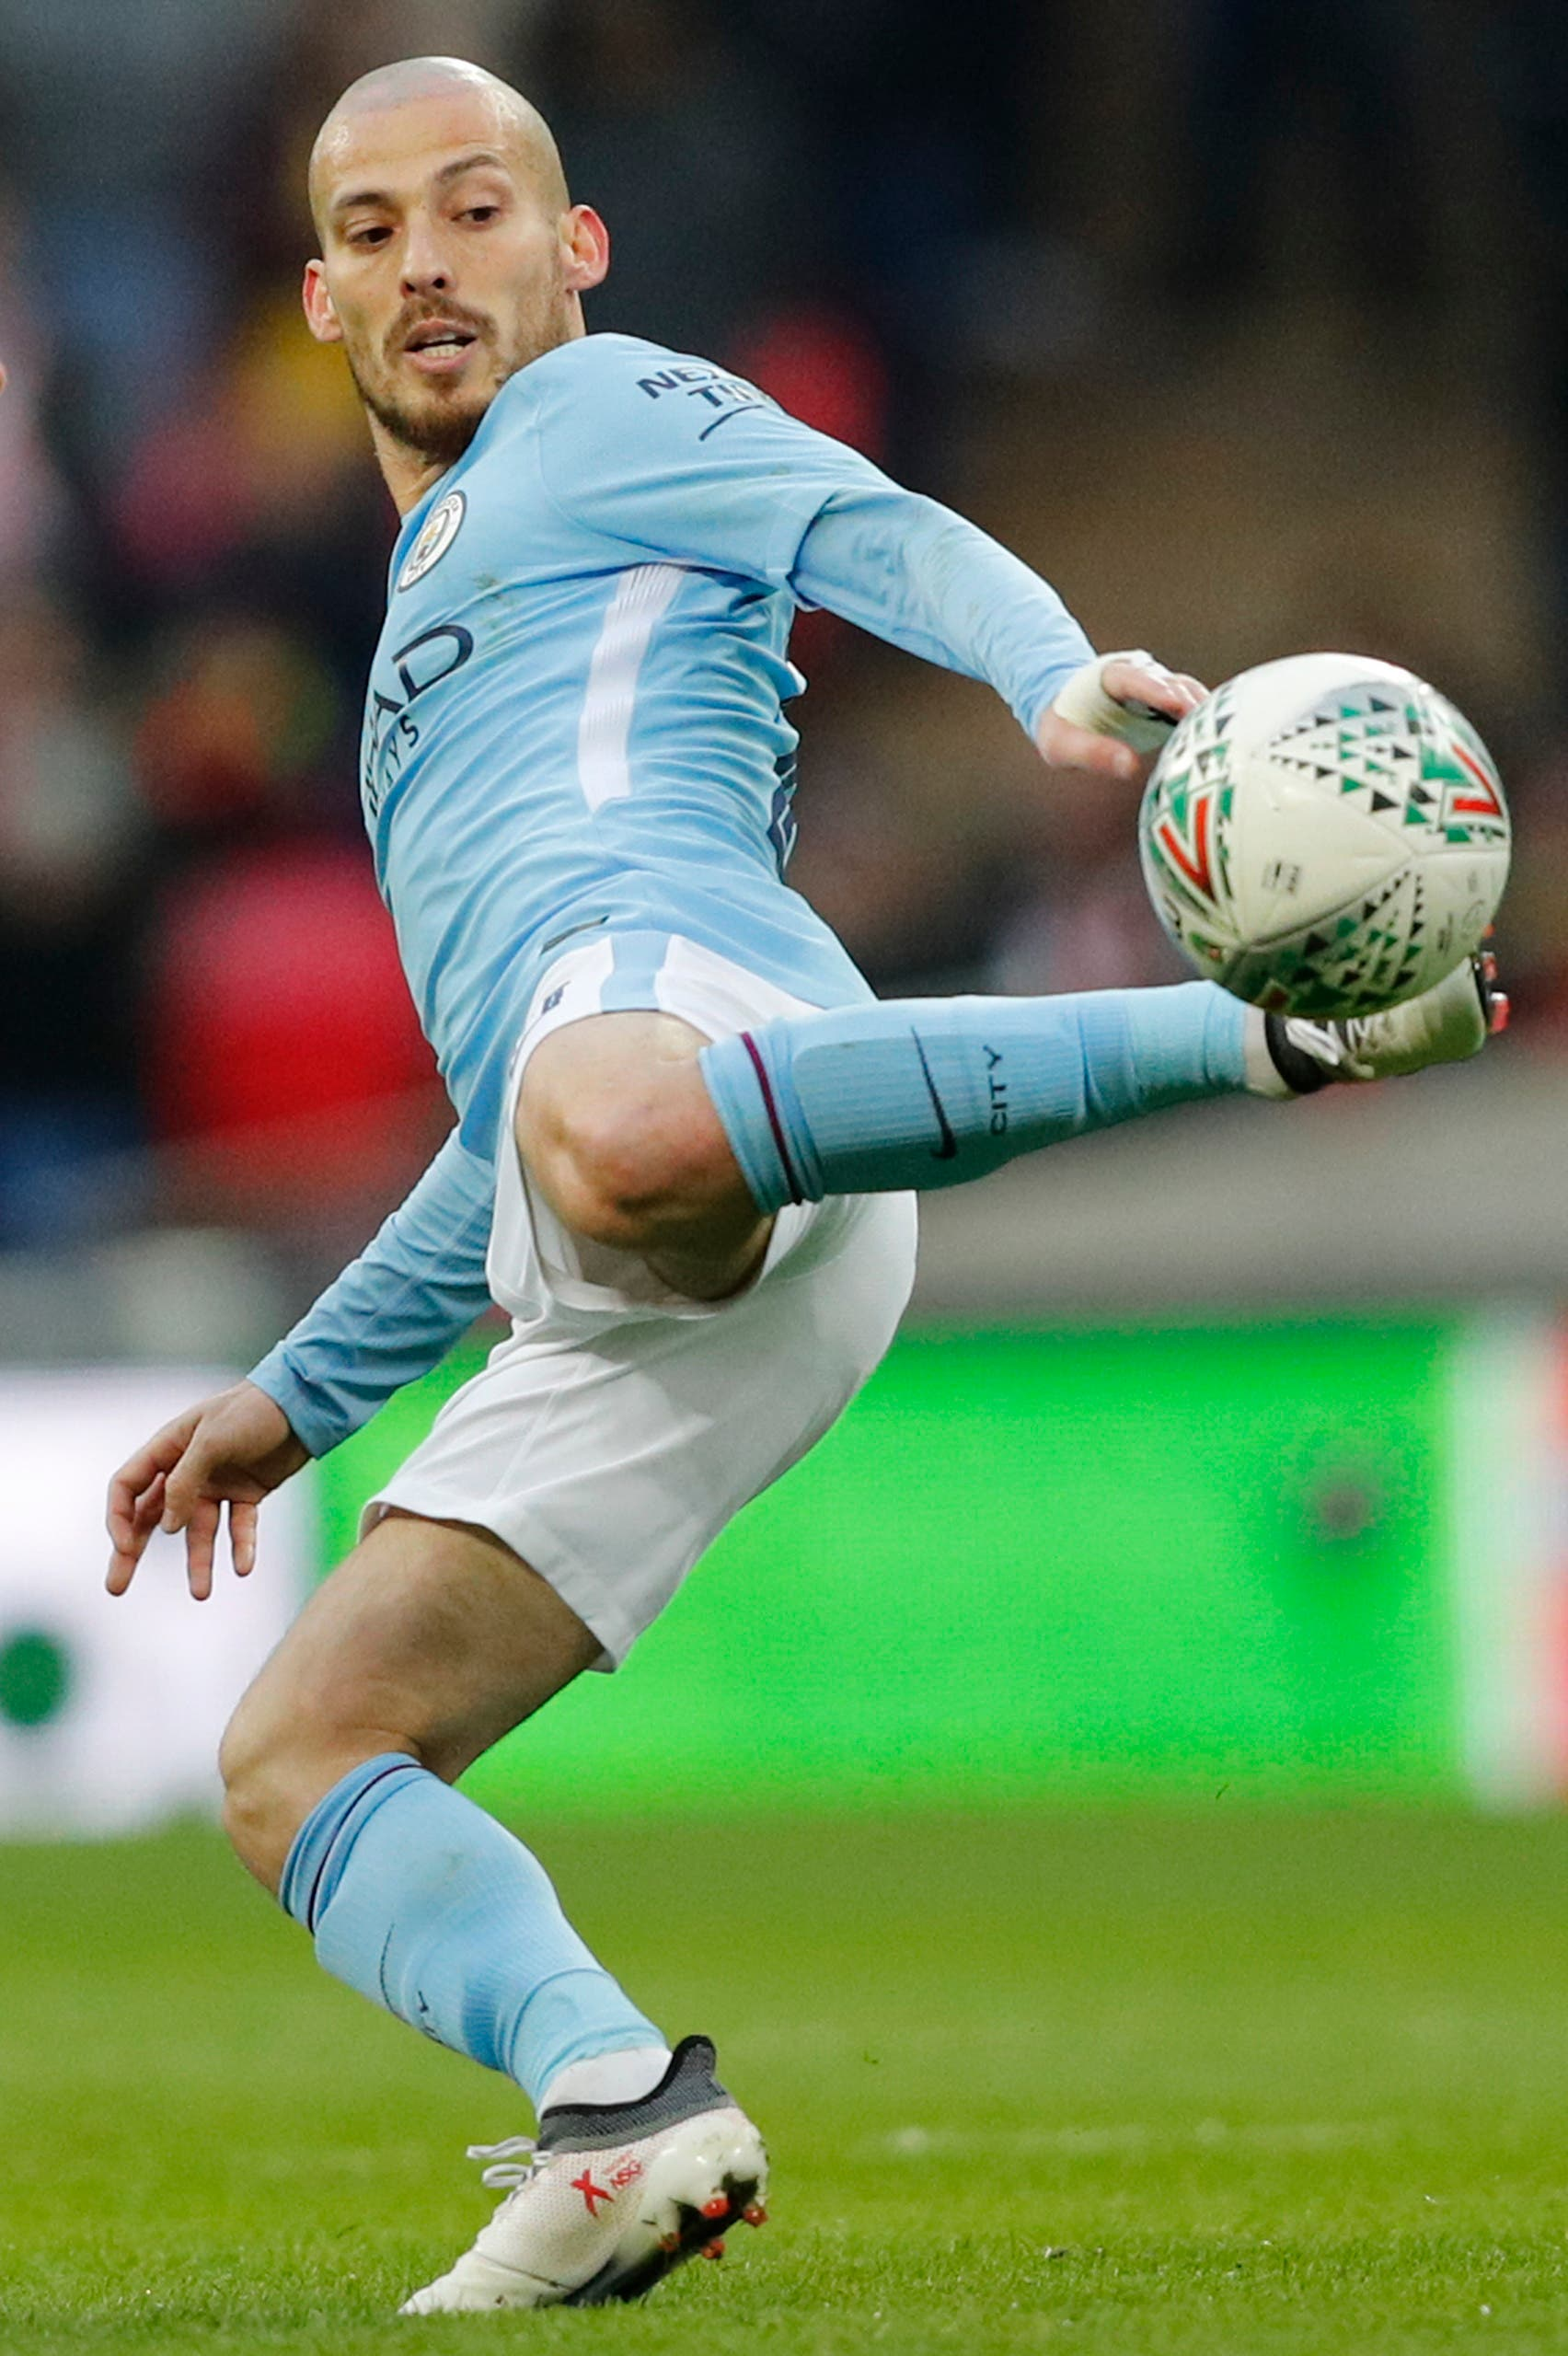 Manchester City's Spanish midfielder David Silva controls the ball during the English League Cup final football match between Manchester City and Arsenal on February 25, 2018. (AFP)